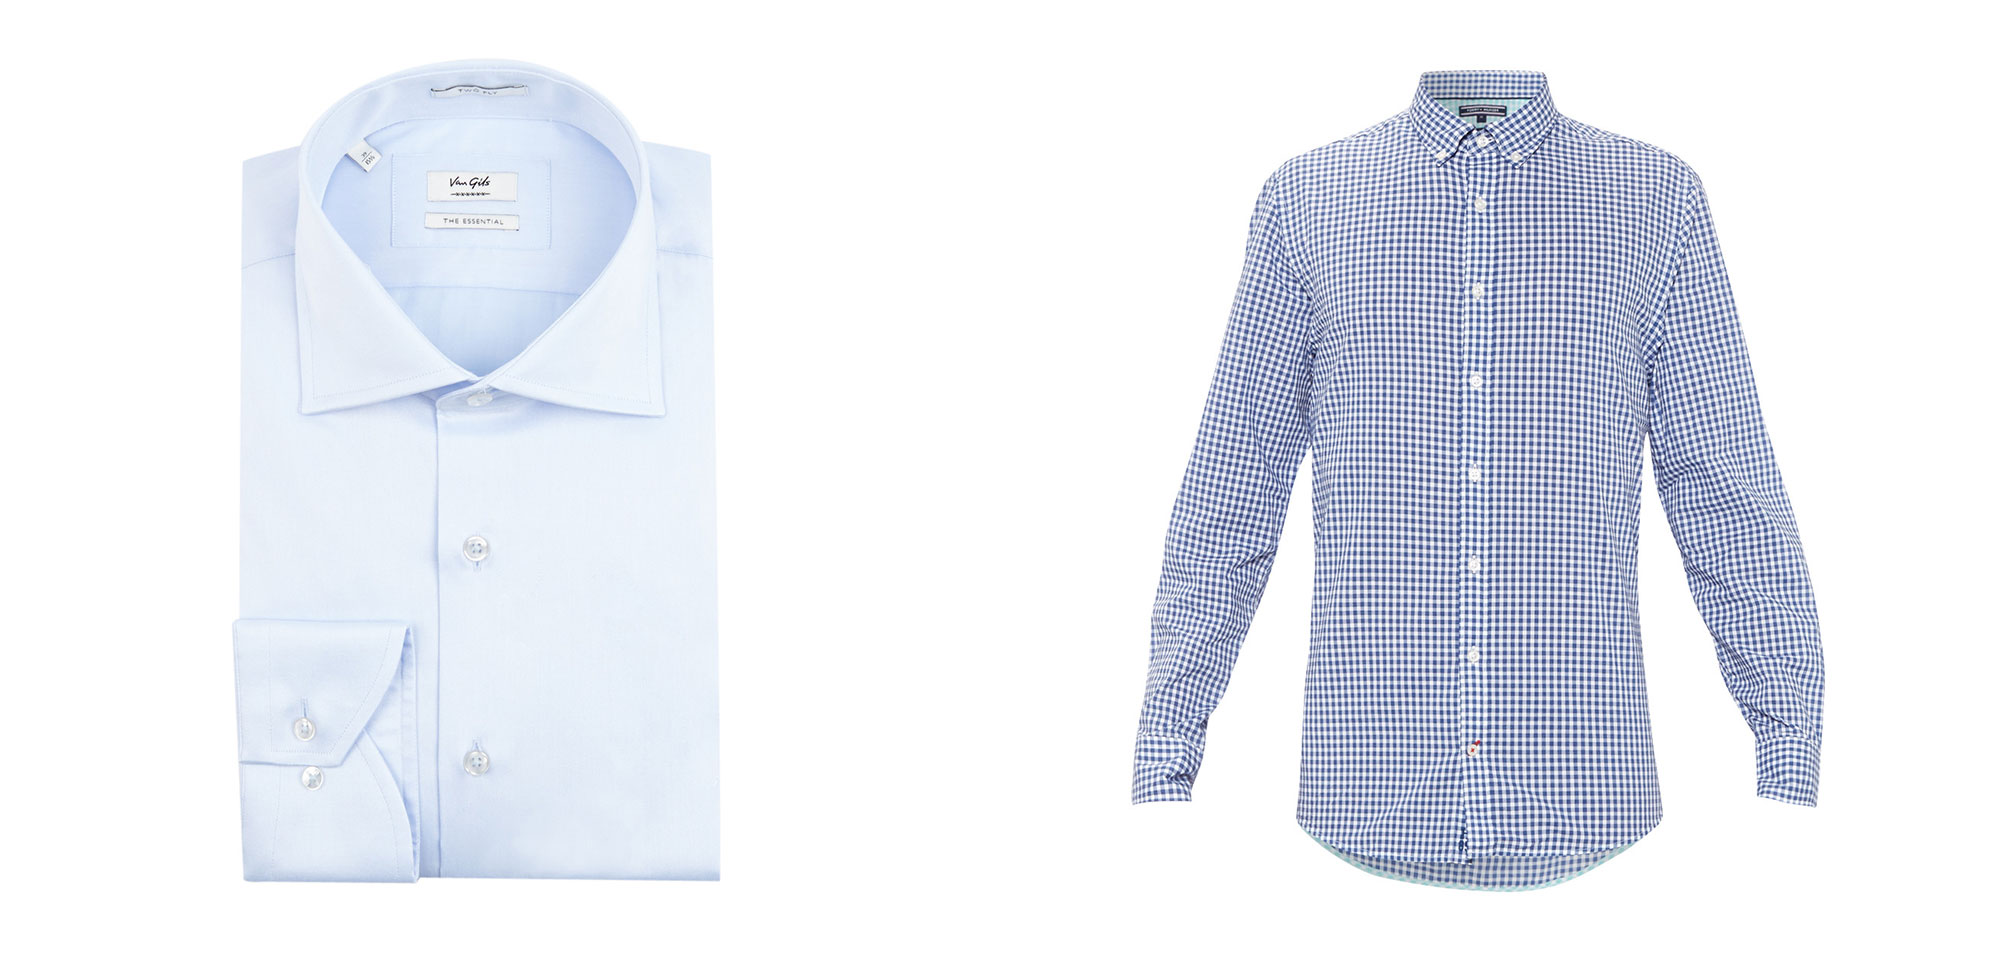 Wel of geen button down?